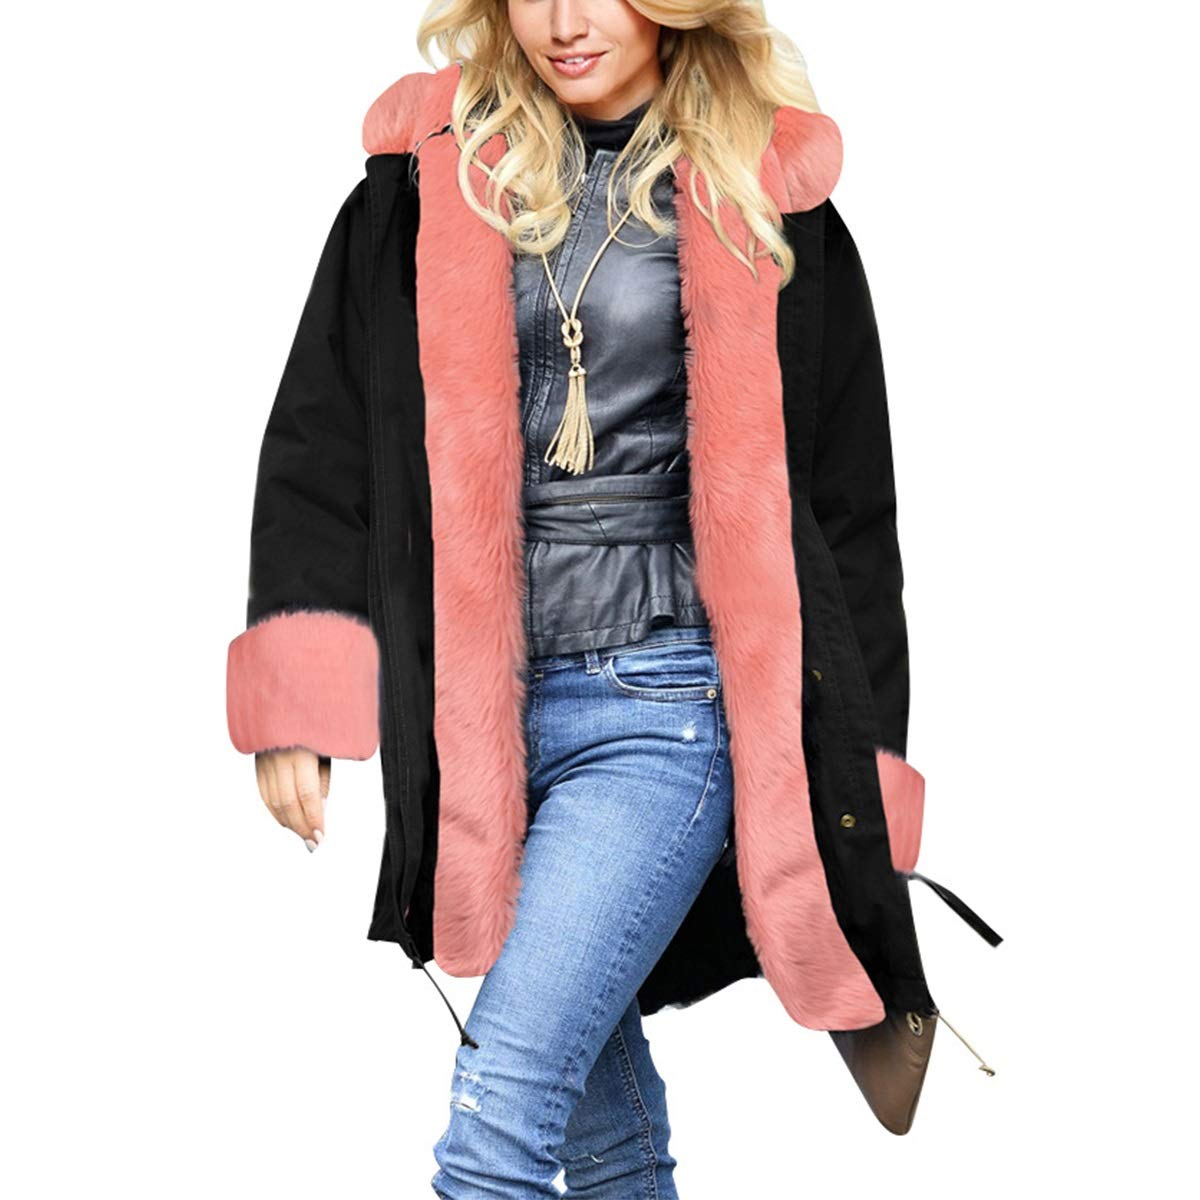 Black Womens Winter Warm Thicken Long Sleeve Faux Fur Collar Hooded Parka Jacket Coat